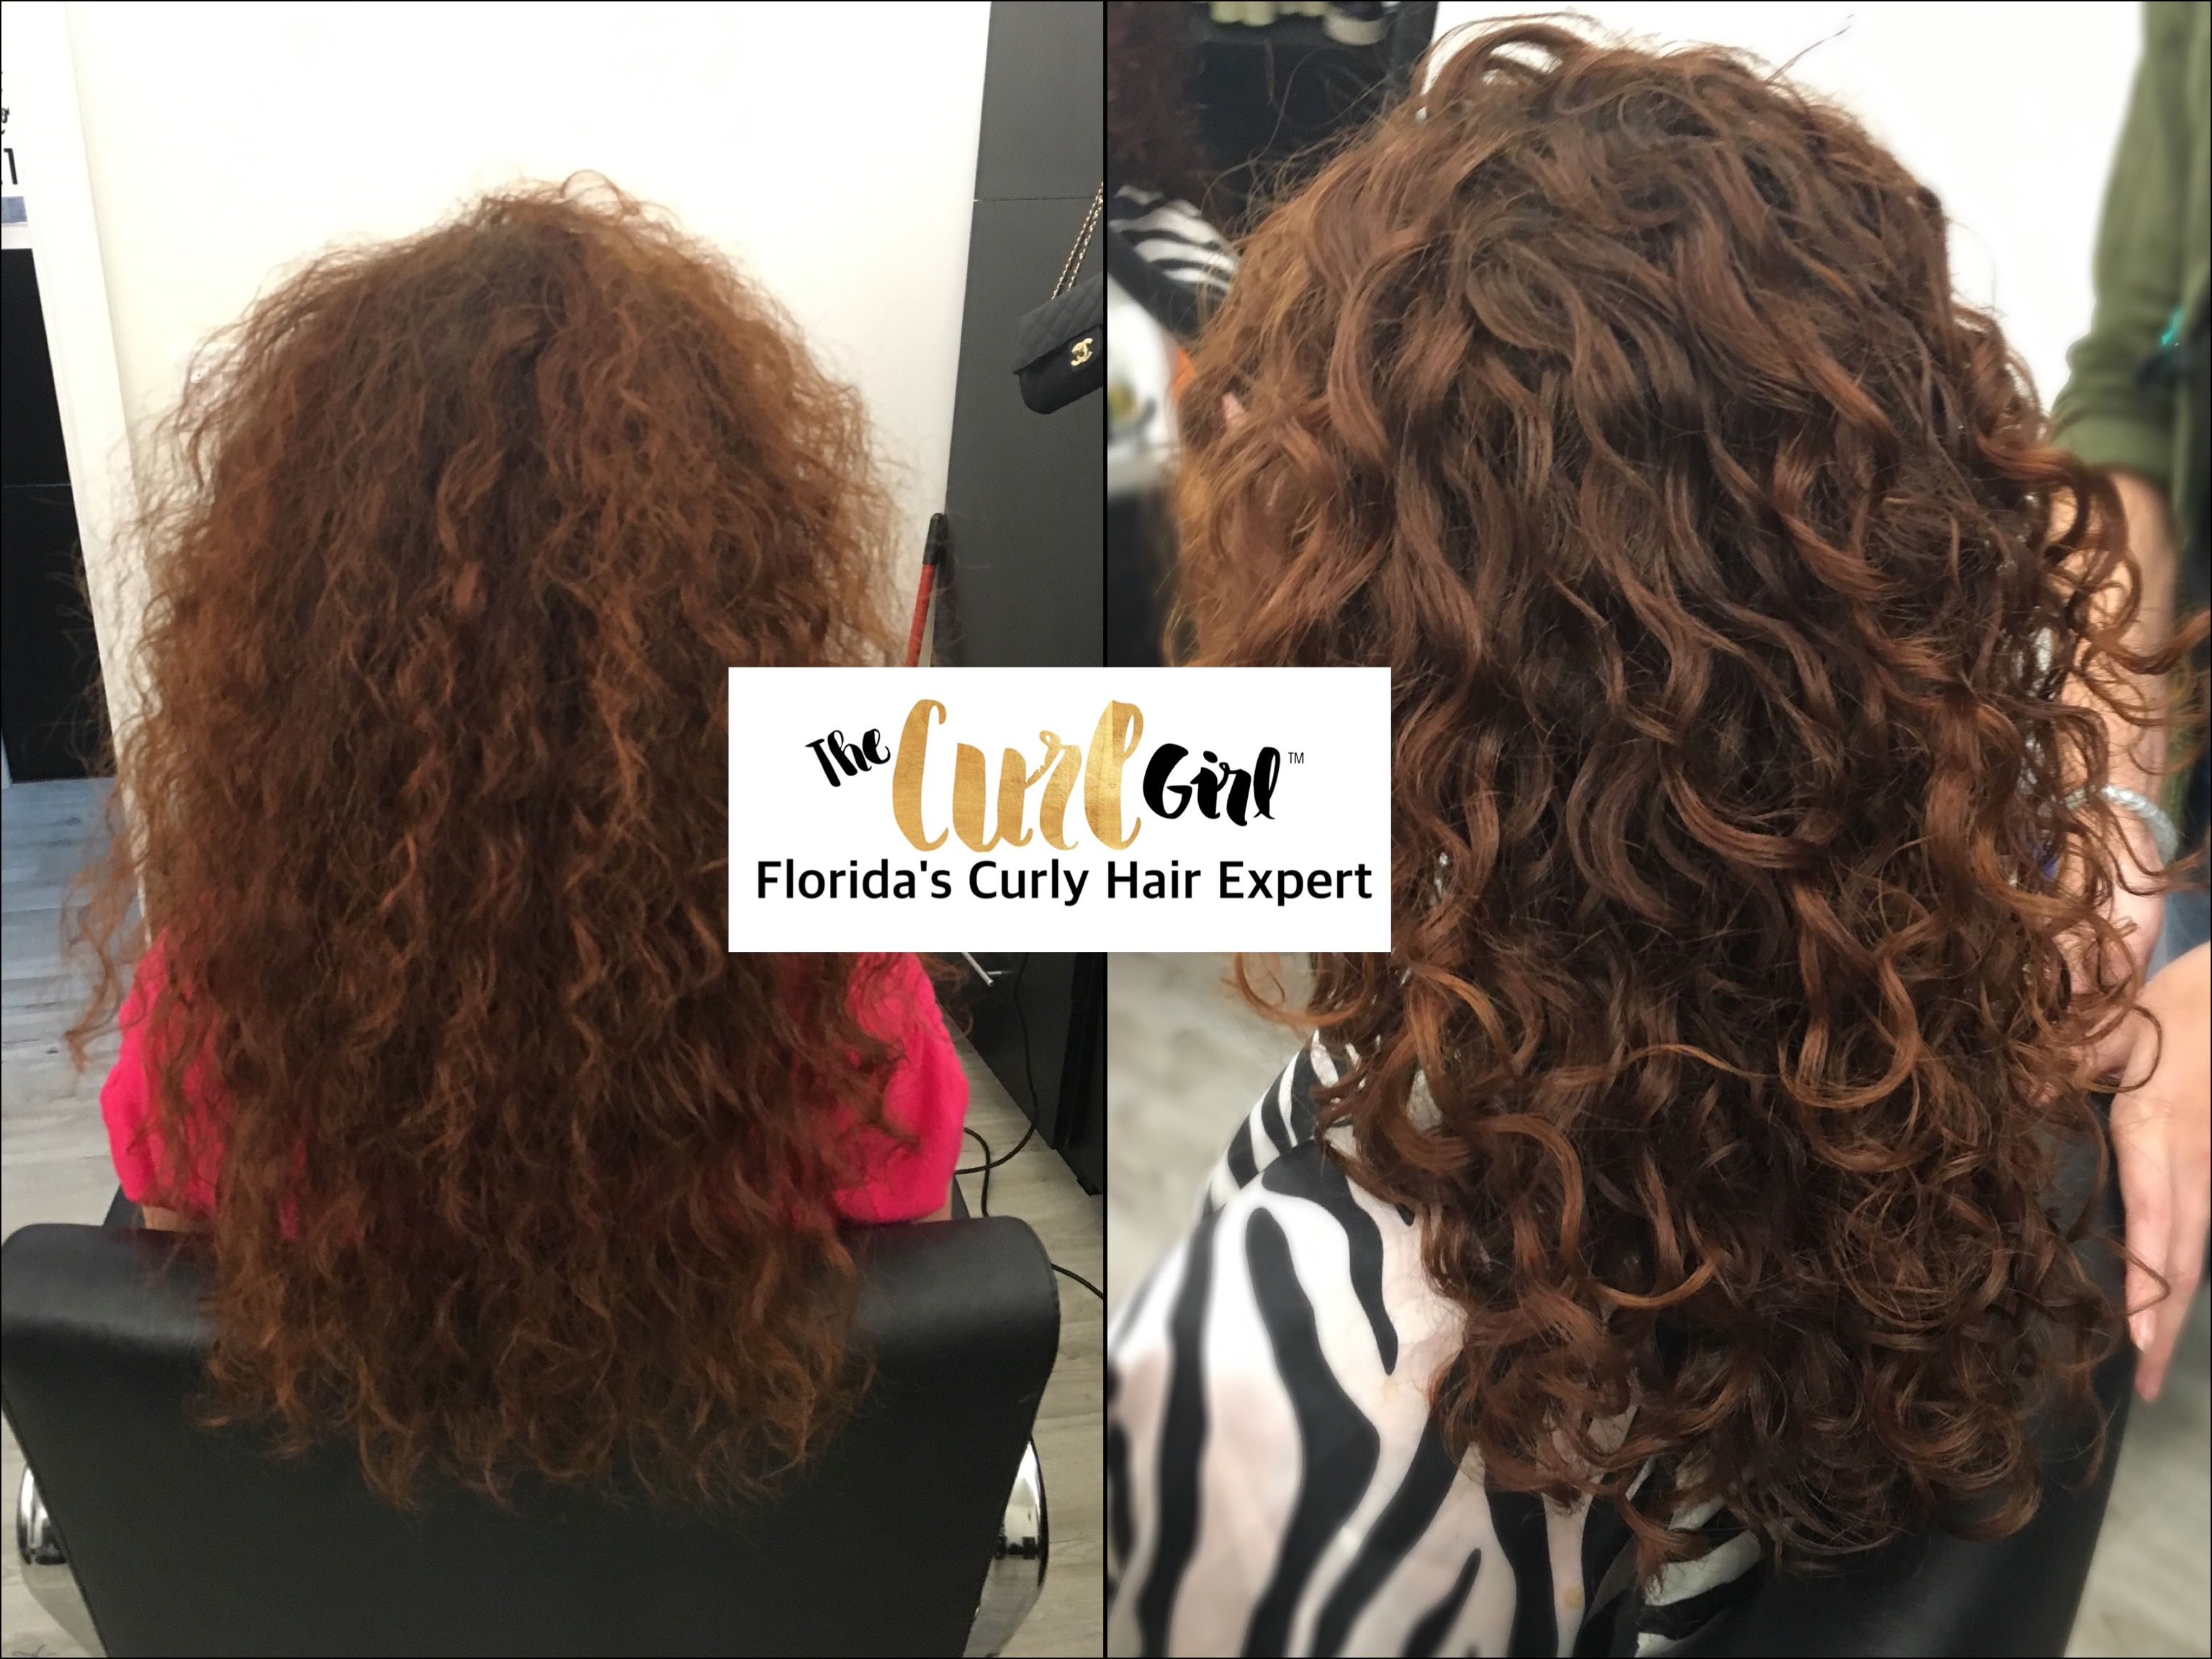 Naturally Curly Hair By The Curl Girl Florida S Curly Hair Expert Ouidad Devacurl Innersens Curly Hair Styles Naturally Curly Hair Styles Long Hair Styles